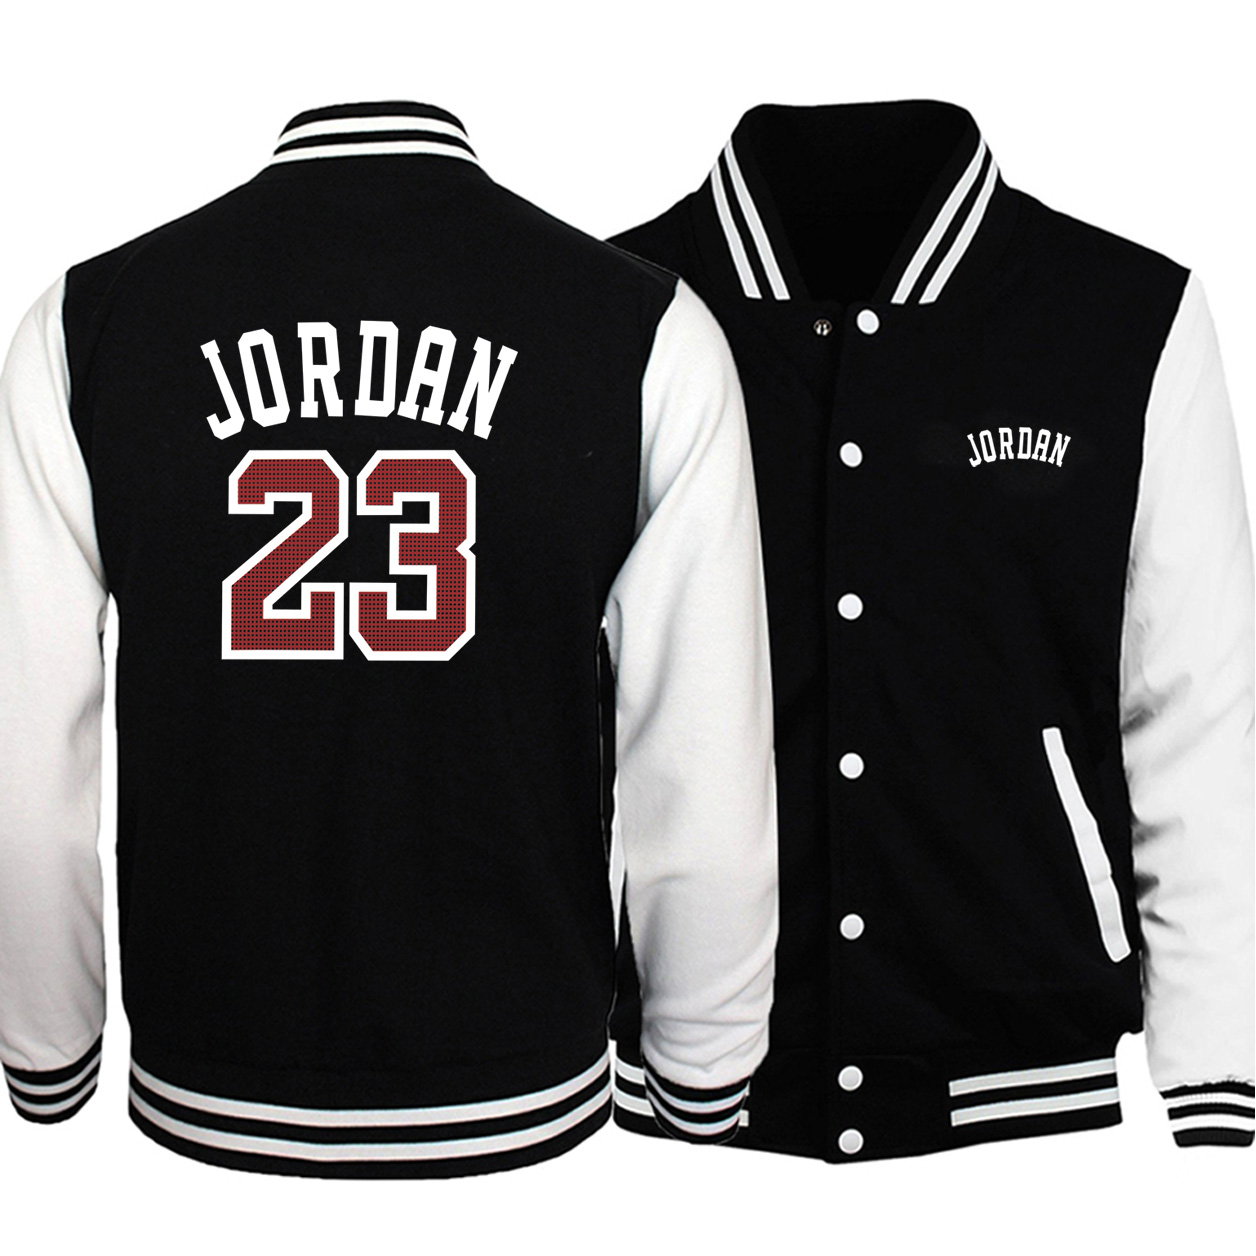 Jordan 23th Mens Jackets Jersey Print Baseball Jackets Uniform Fleece Casual Streetwear 2020 Autumn Winter Hip Hop Coats Jackets